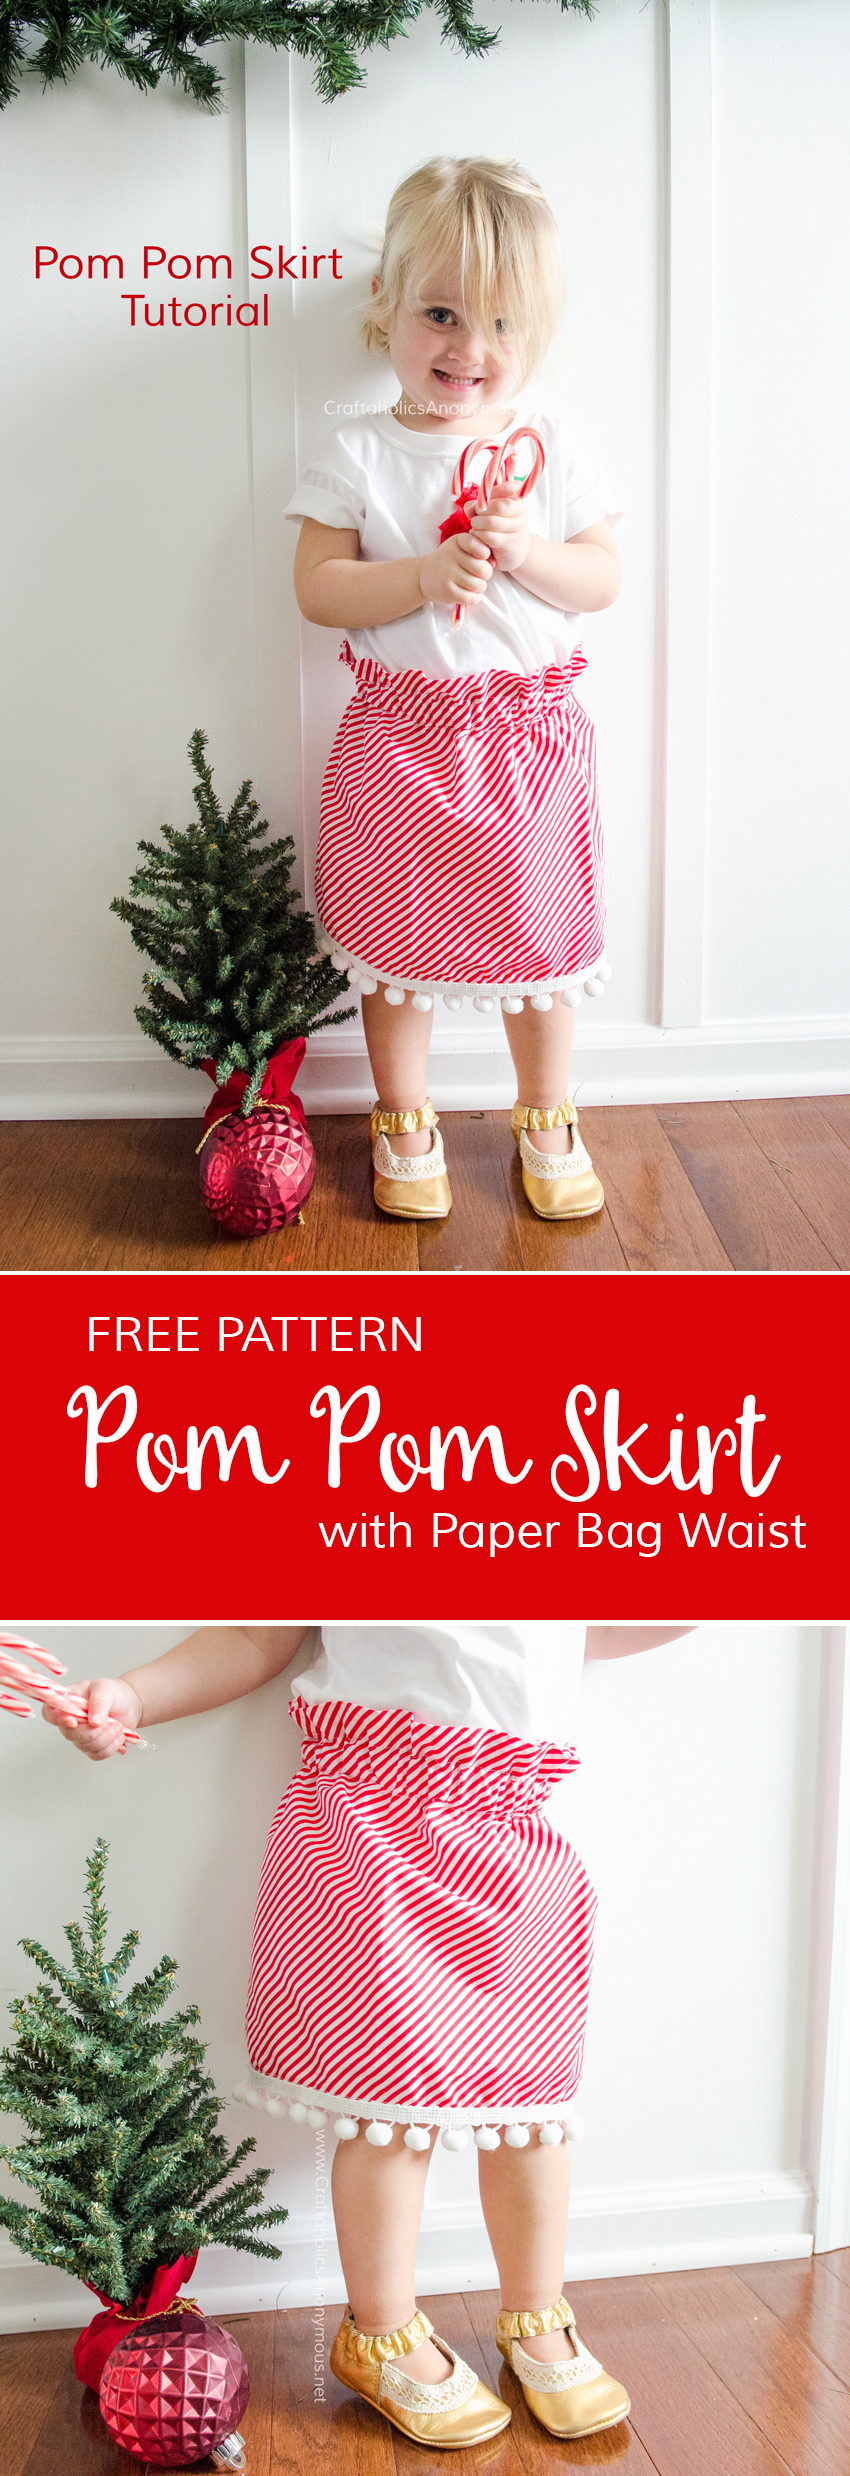 DIY Christmas Skirt tutorial with pom poms and a Paper Bag Waist. Love the details of this simple skirt! Pom Pom Skirt tutorial Free sewing pattern www.CraftaholicsAnonymous.net